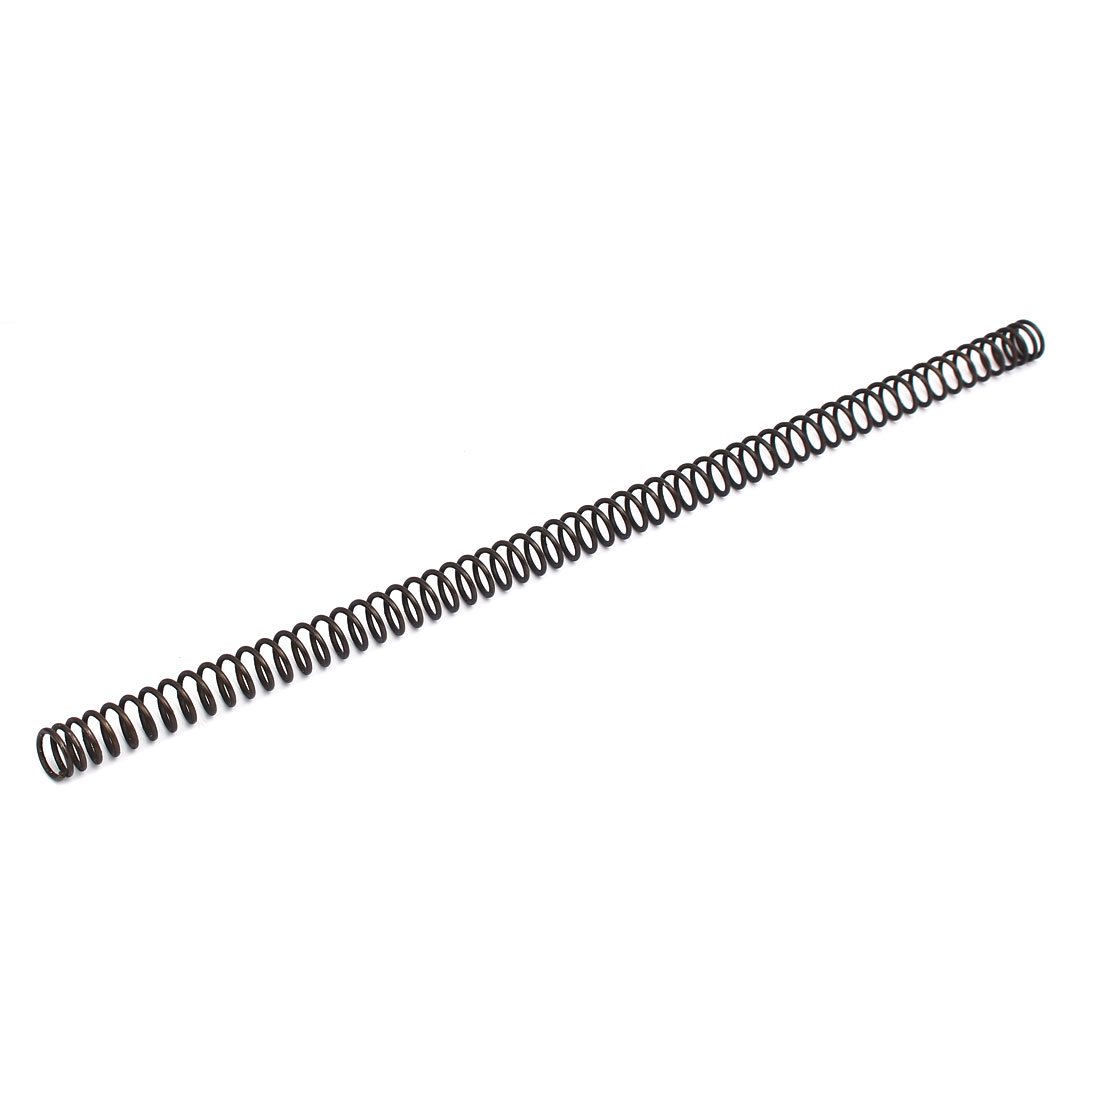 1.4mmx12mmx305mm Manganese Steel Compression Spring Black